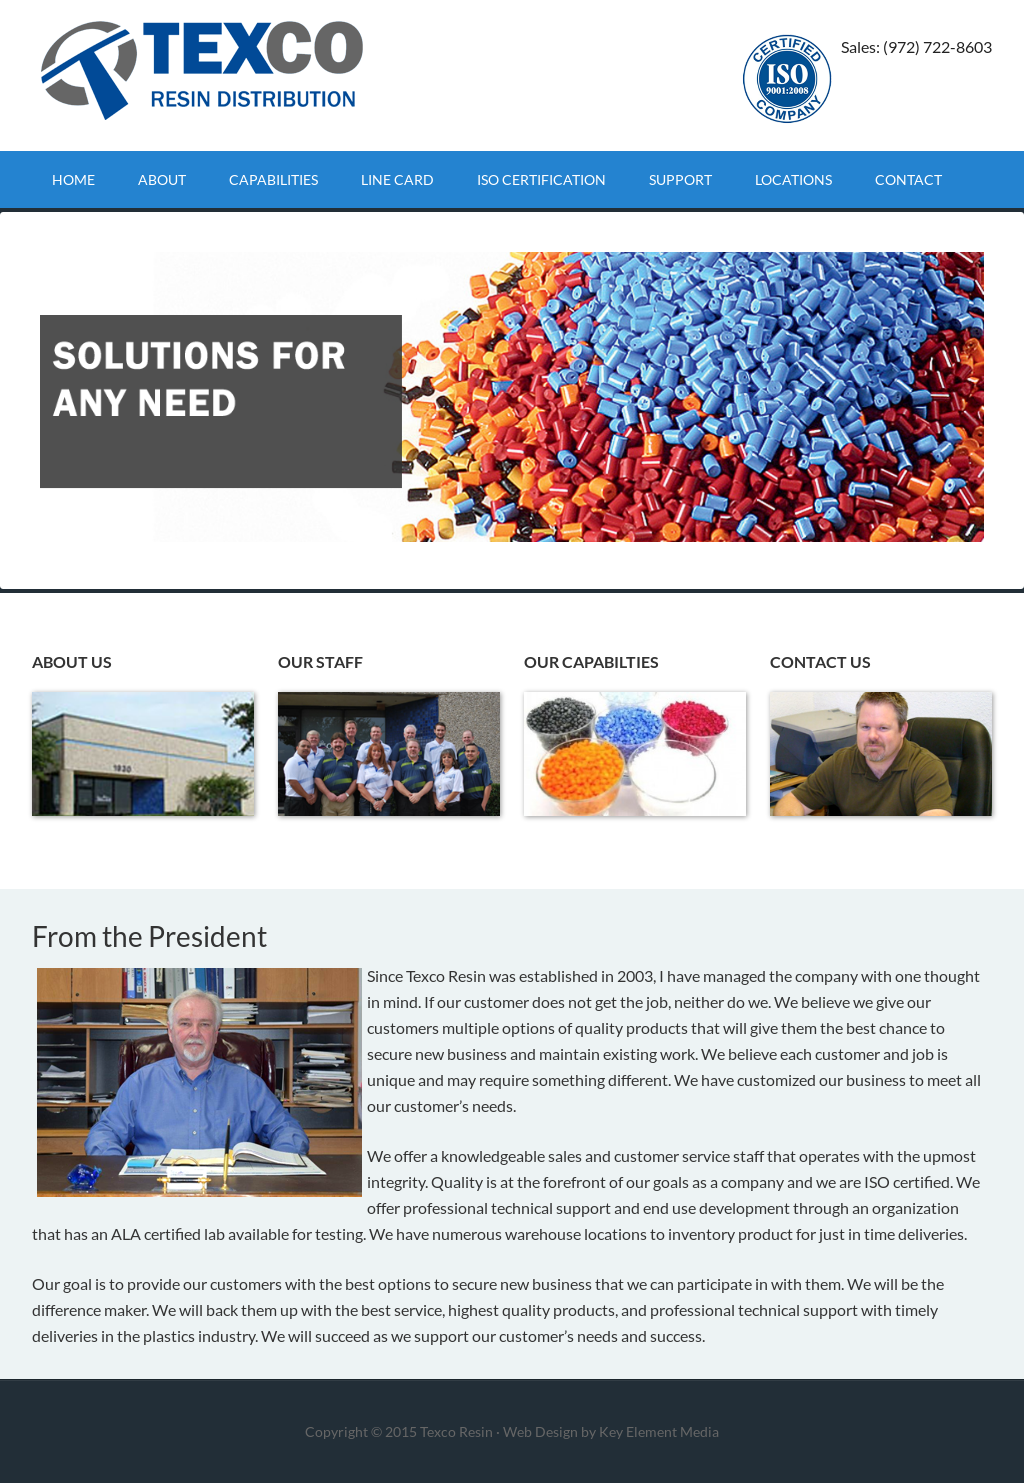 Texco Resin Distributing Competitors, Revenue and Employees